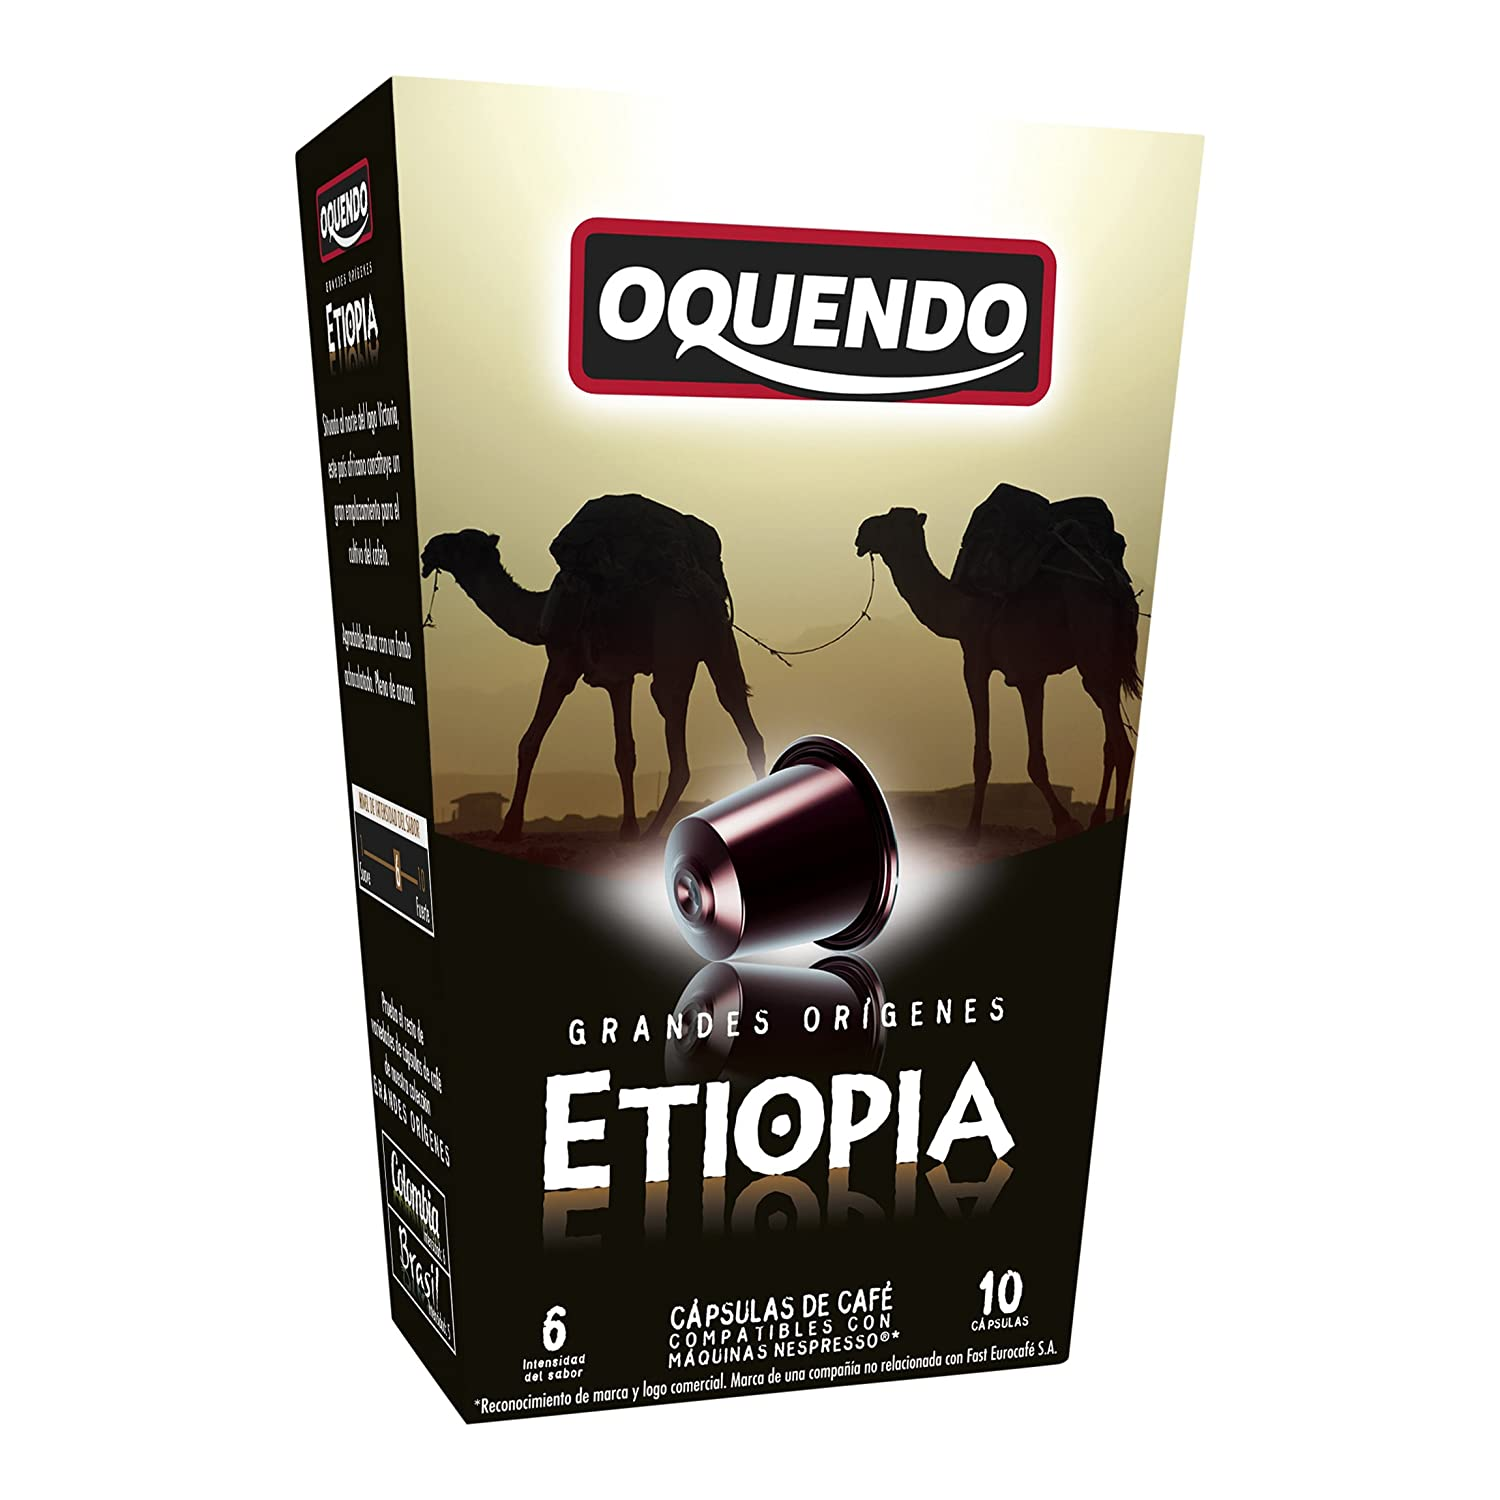 80 Cafés Oquendo Nespresso Compatible Coffee Capsules – (ETIOPIA) Single Origin Premium Quality Nespresso coffee - 8 Boxes 10 capsules in each box - 80 cups ...